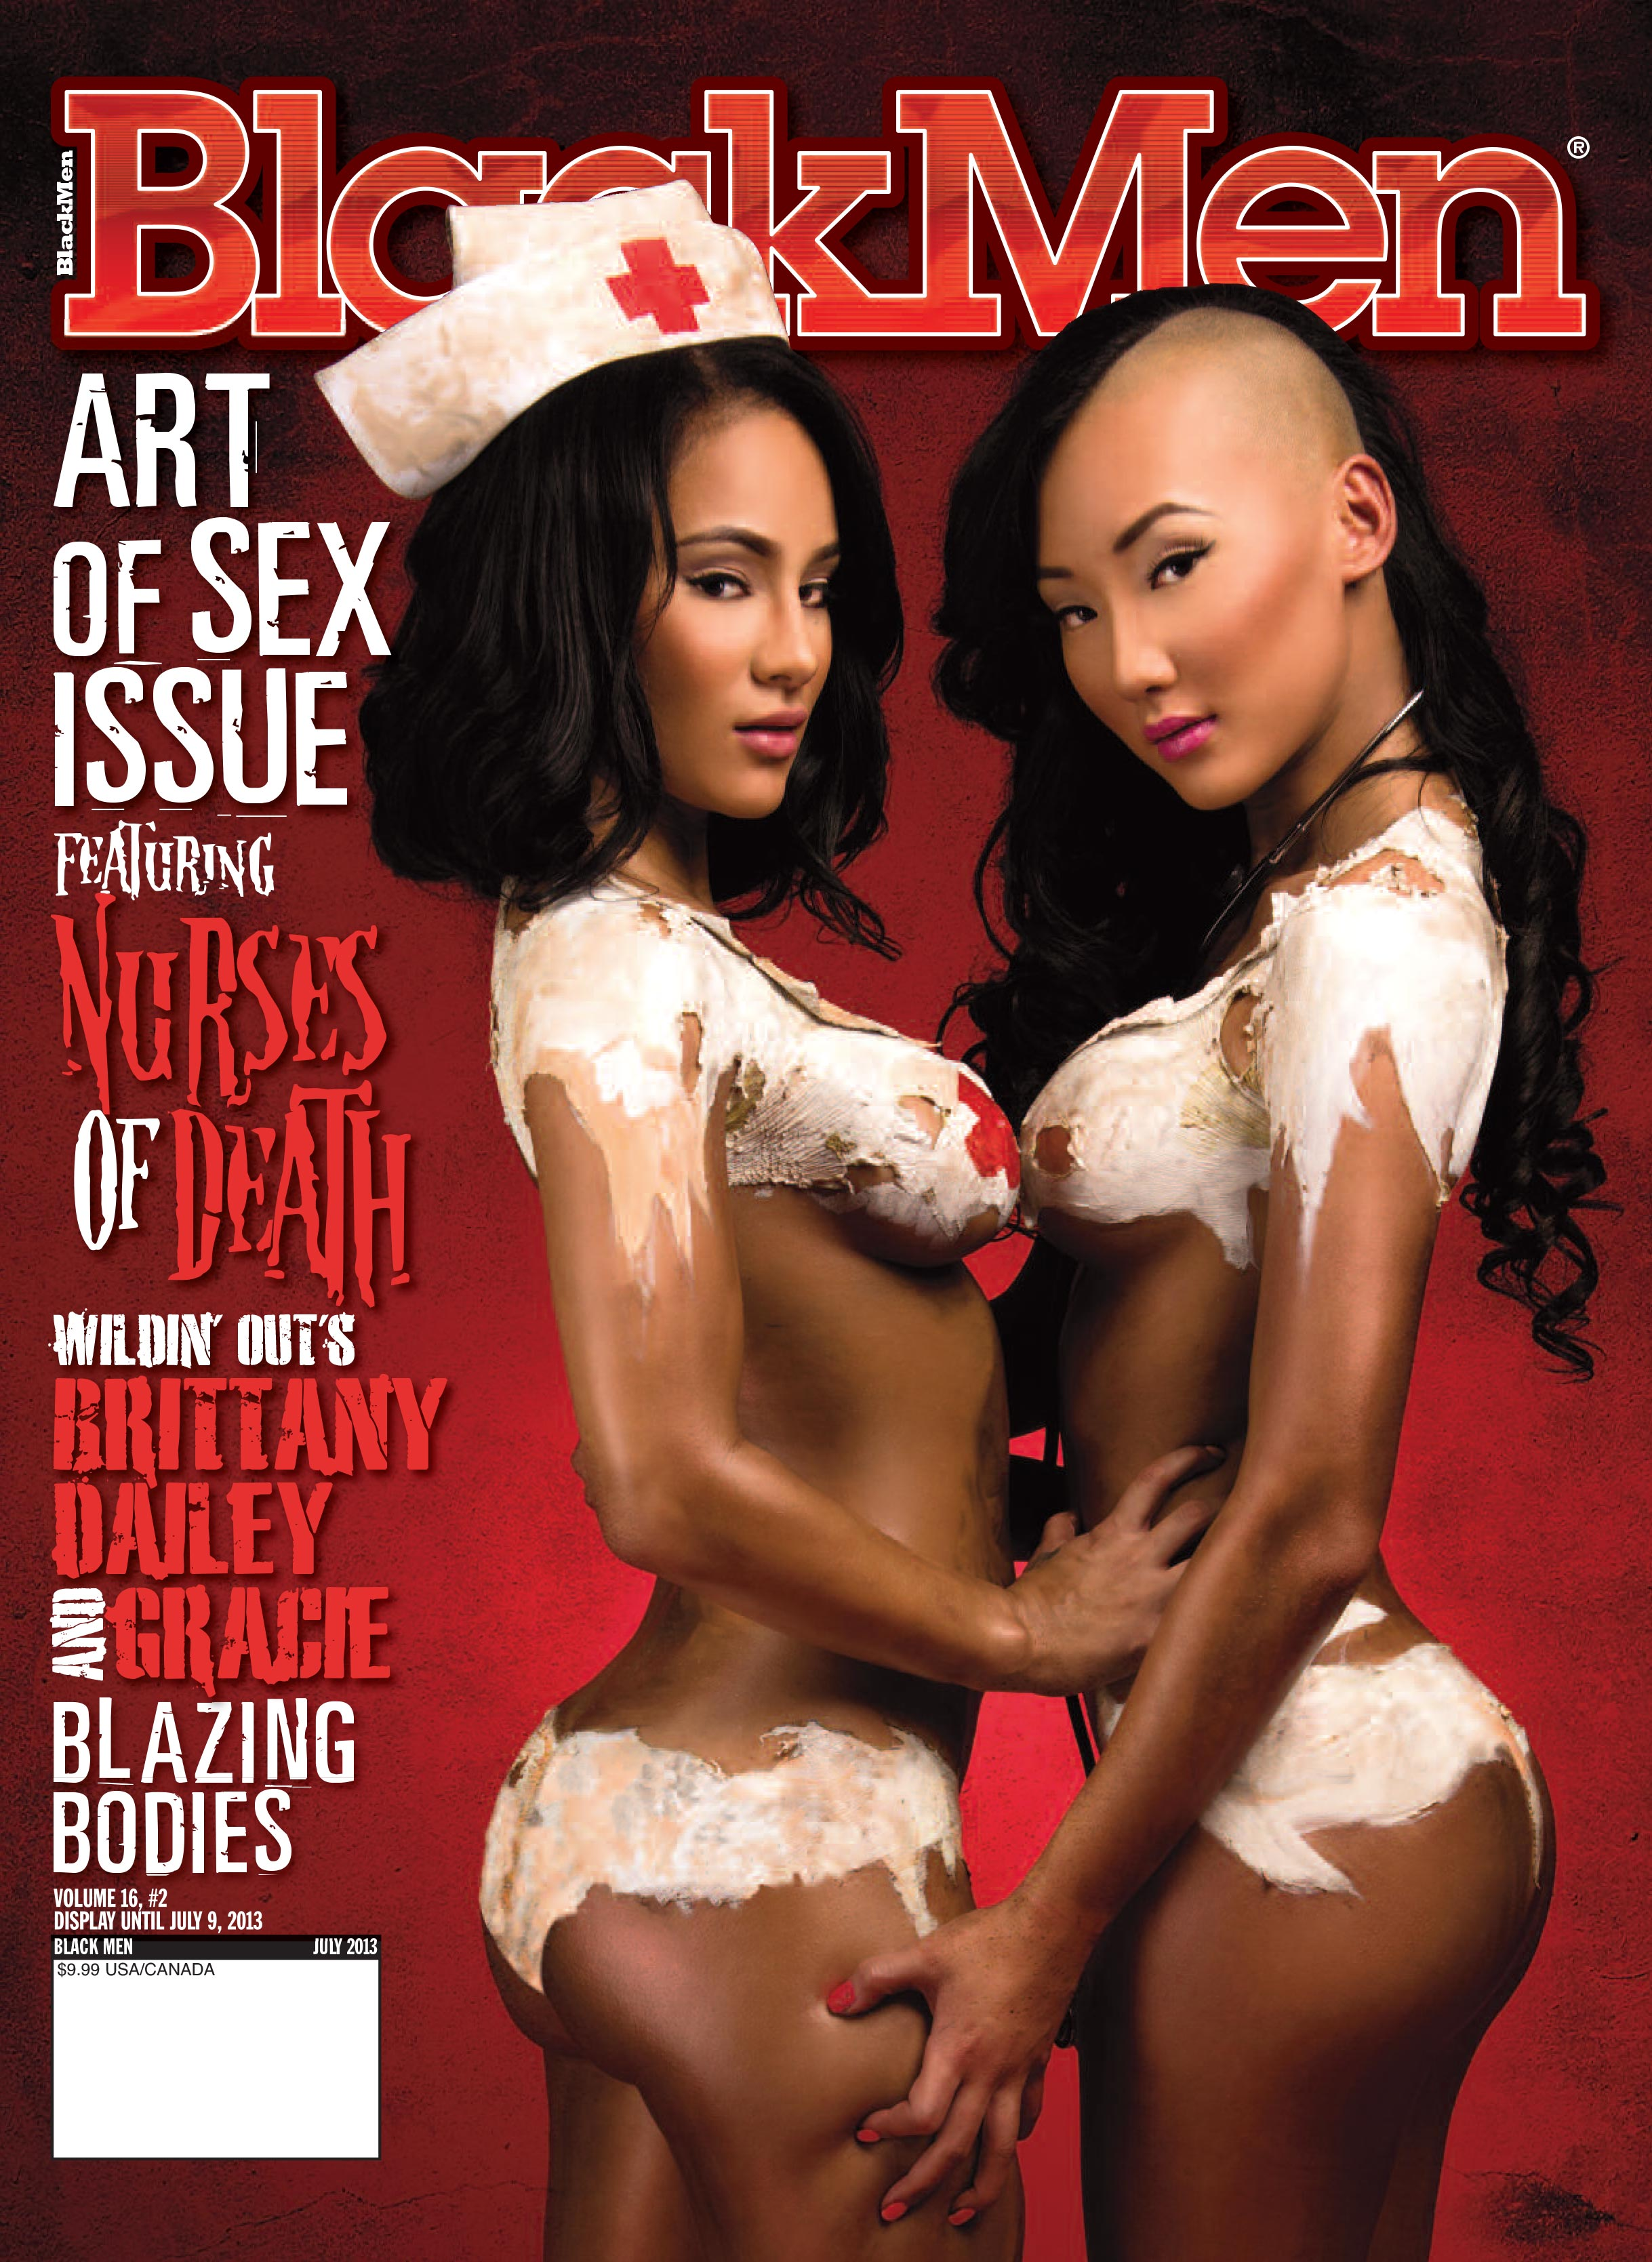 Naked pics of the wildn out girls realize, told